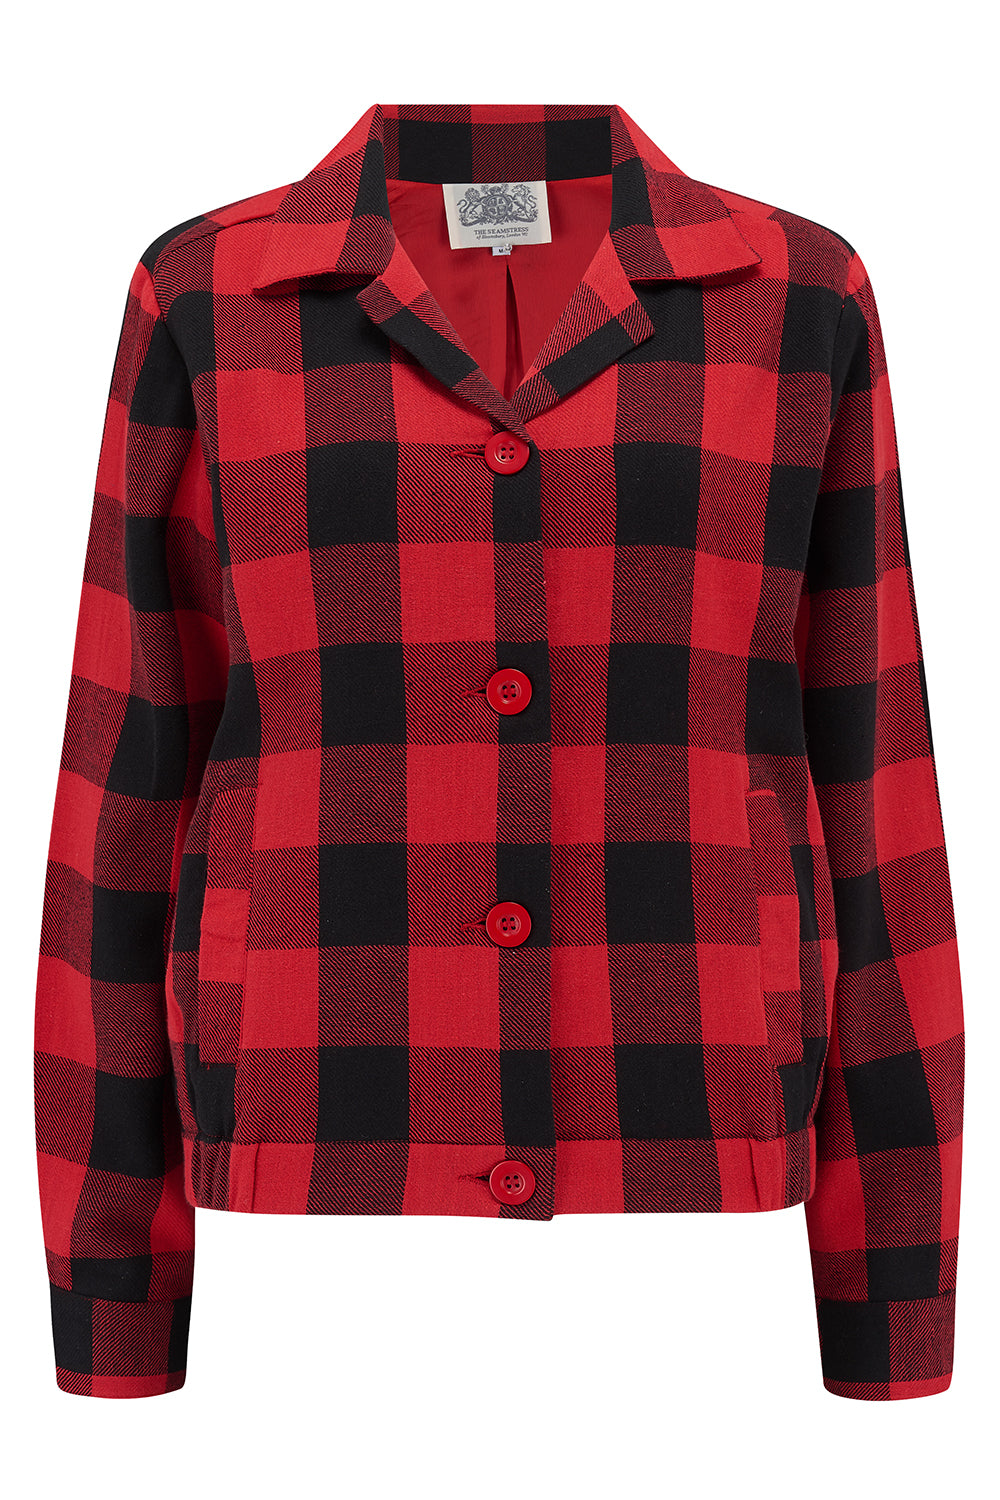 "The Seamstress Of Bloomsbury Short 40's ""Nicki"" Jacket Check in red/black check, Authentic & Classic 1940s Vintage Inspired Style - RocknRomance Clothing"